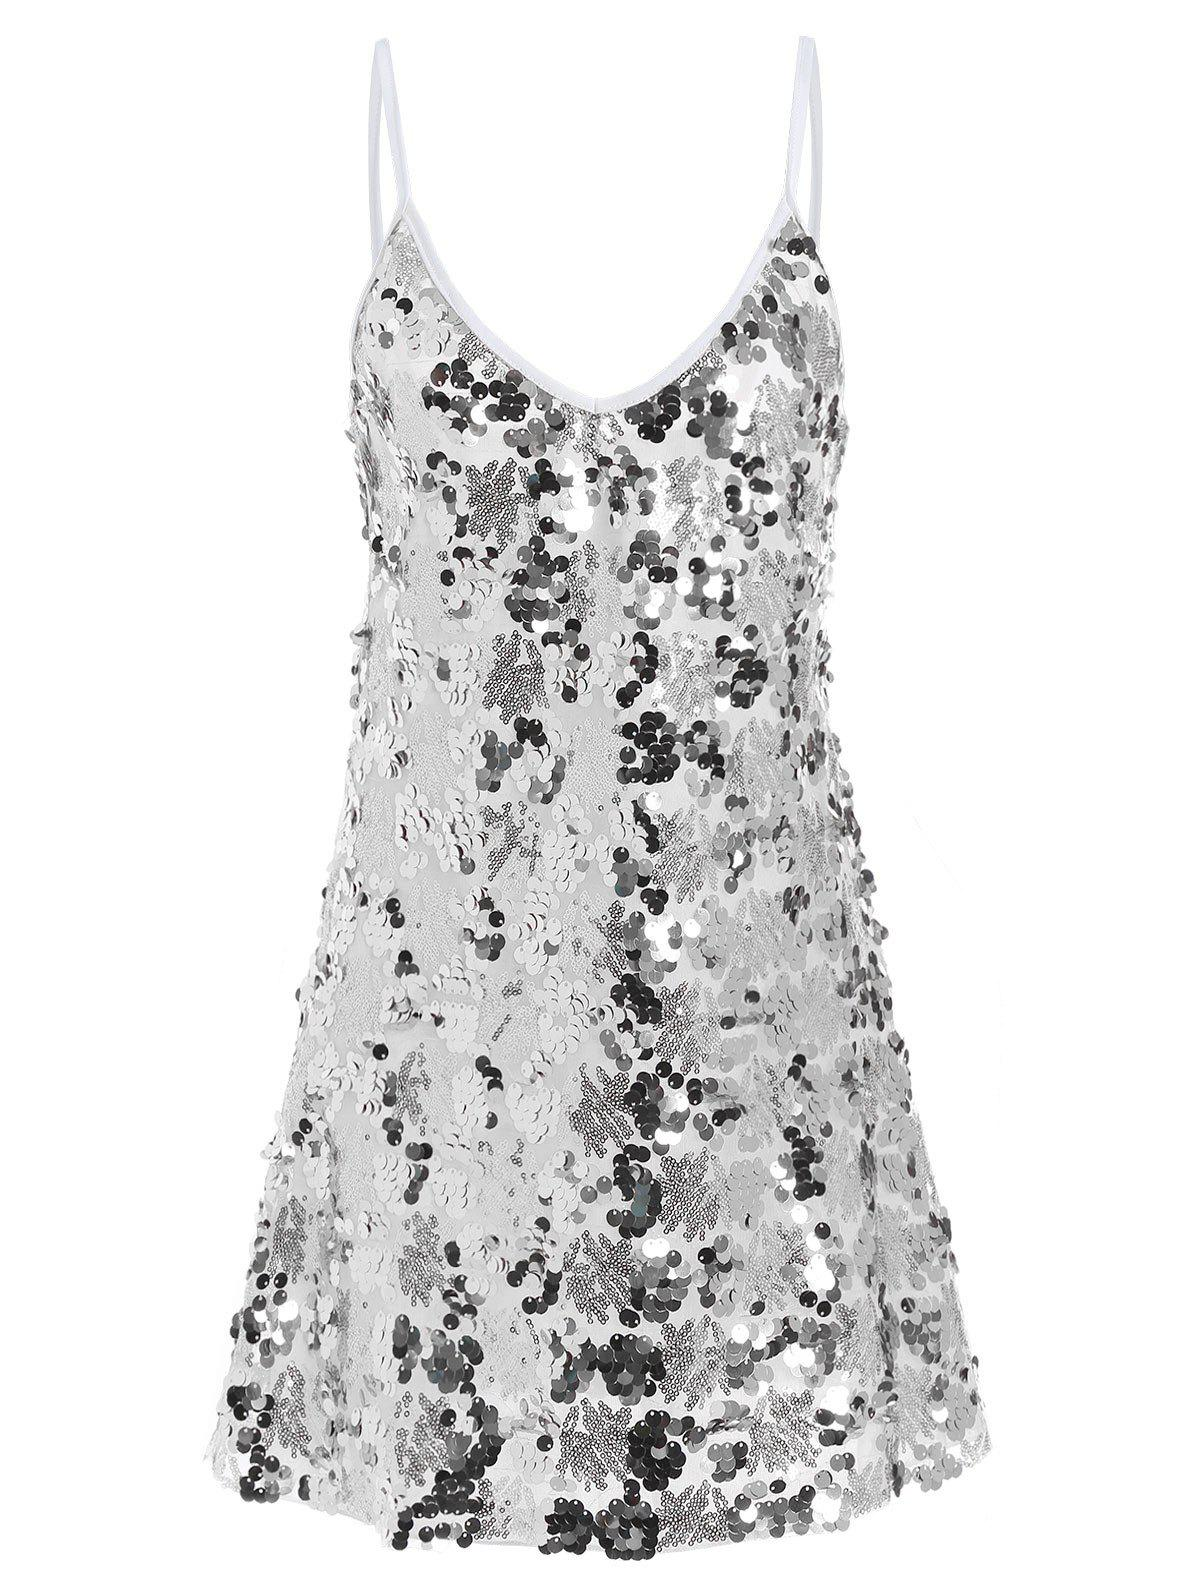 Discount Sequin Glitter Shiny Slip Club Dress